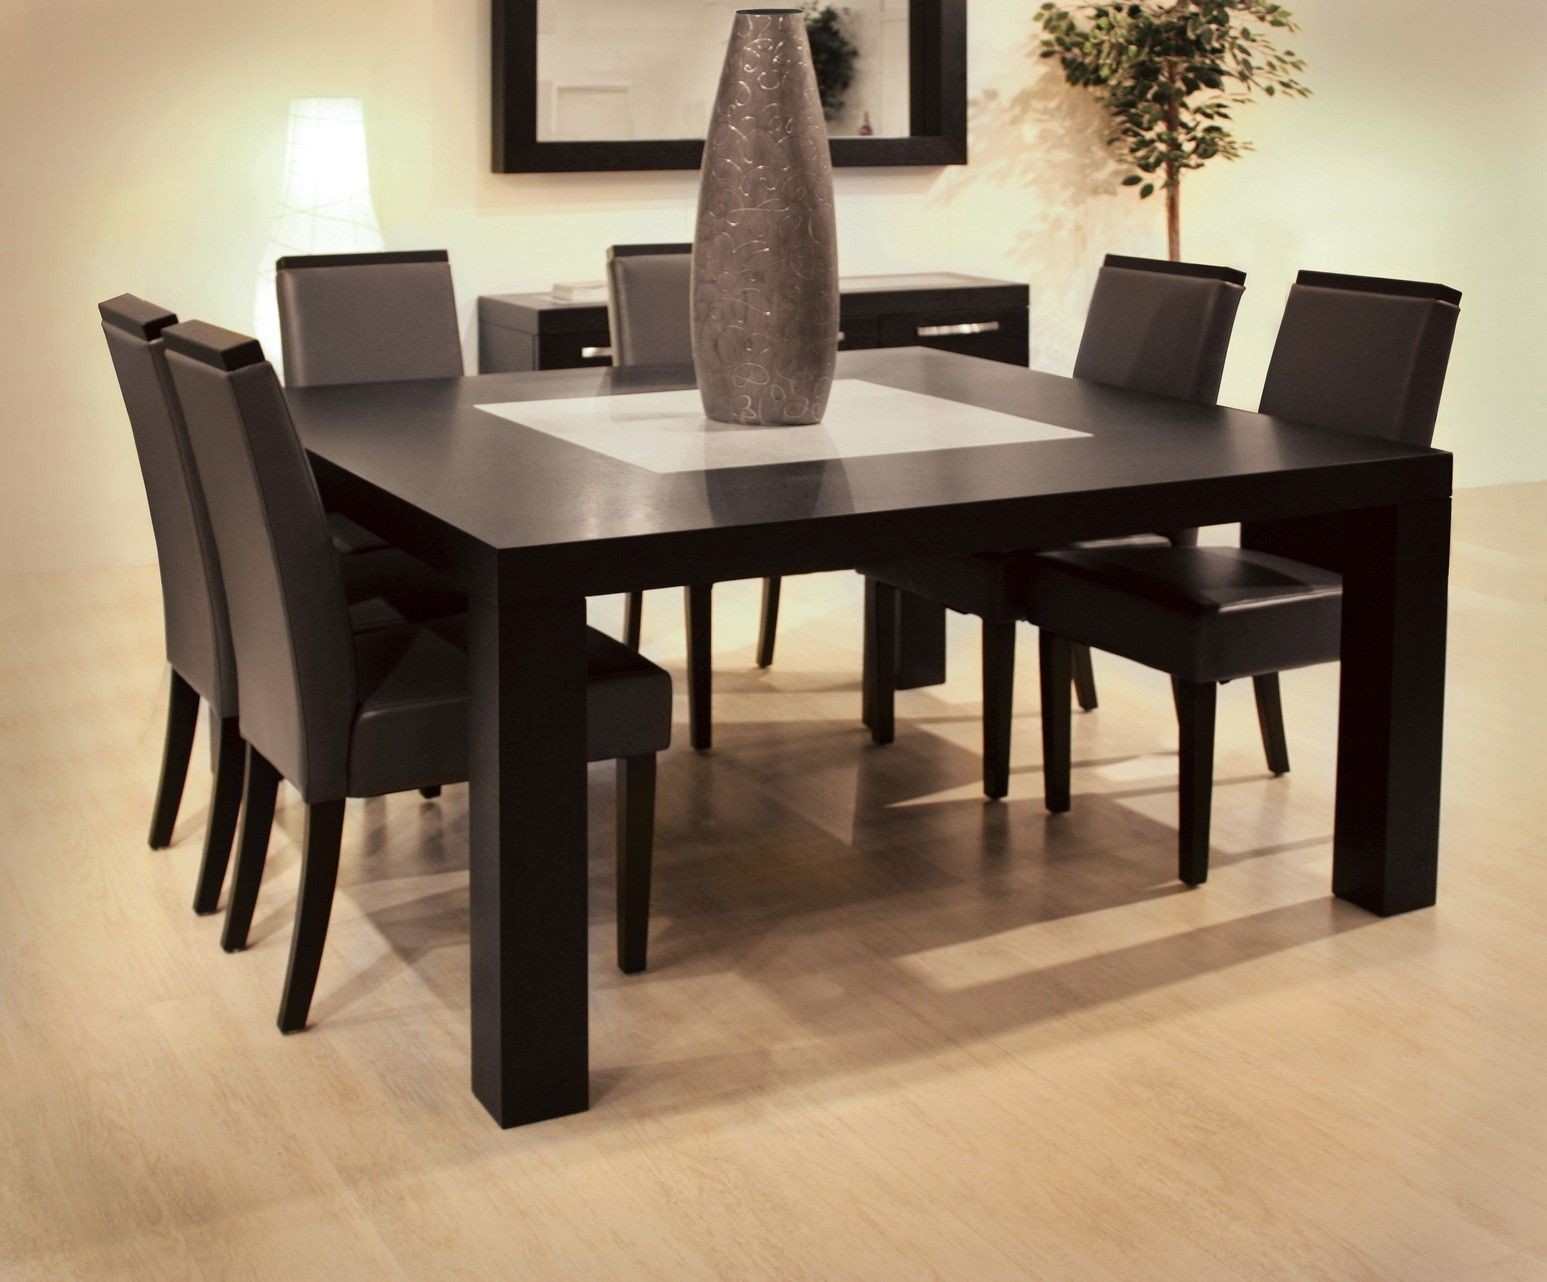 dining table sets wood modern  dining room  pinterest  square  - dining table sets wood modern